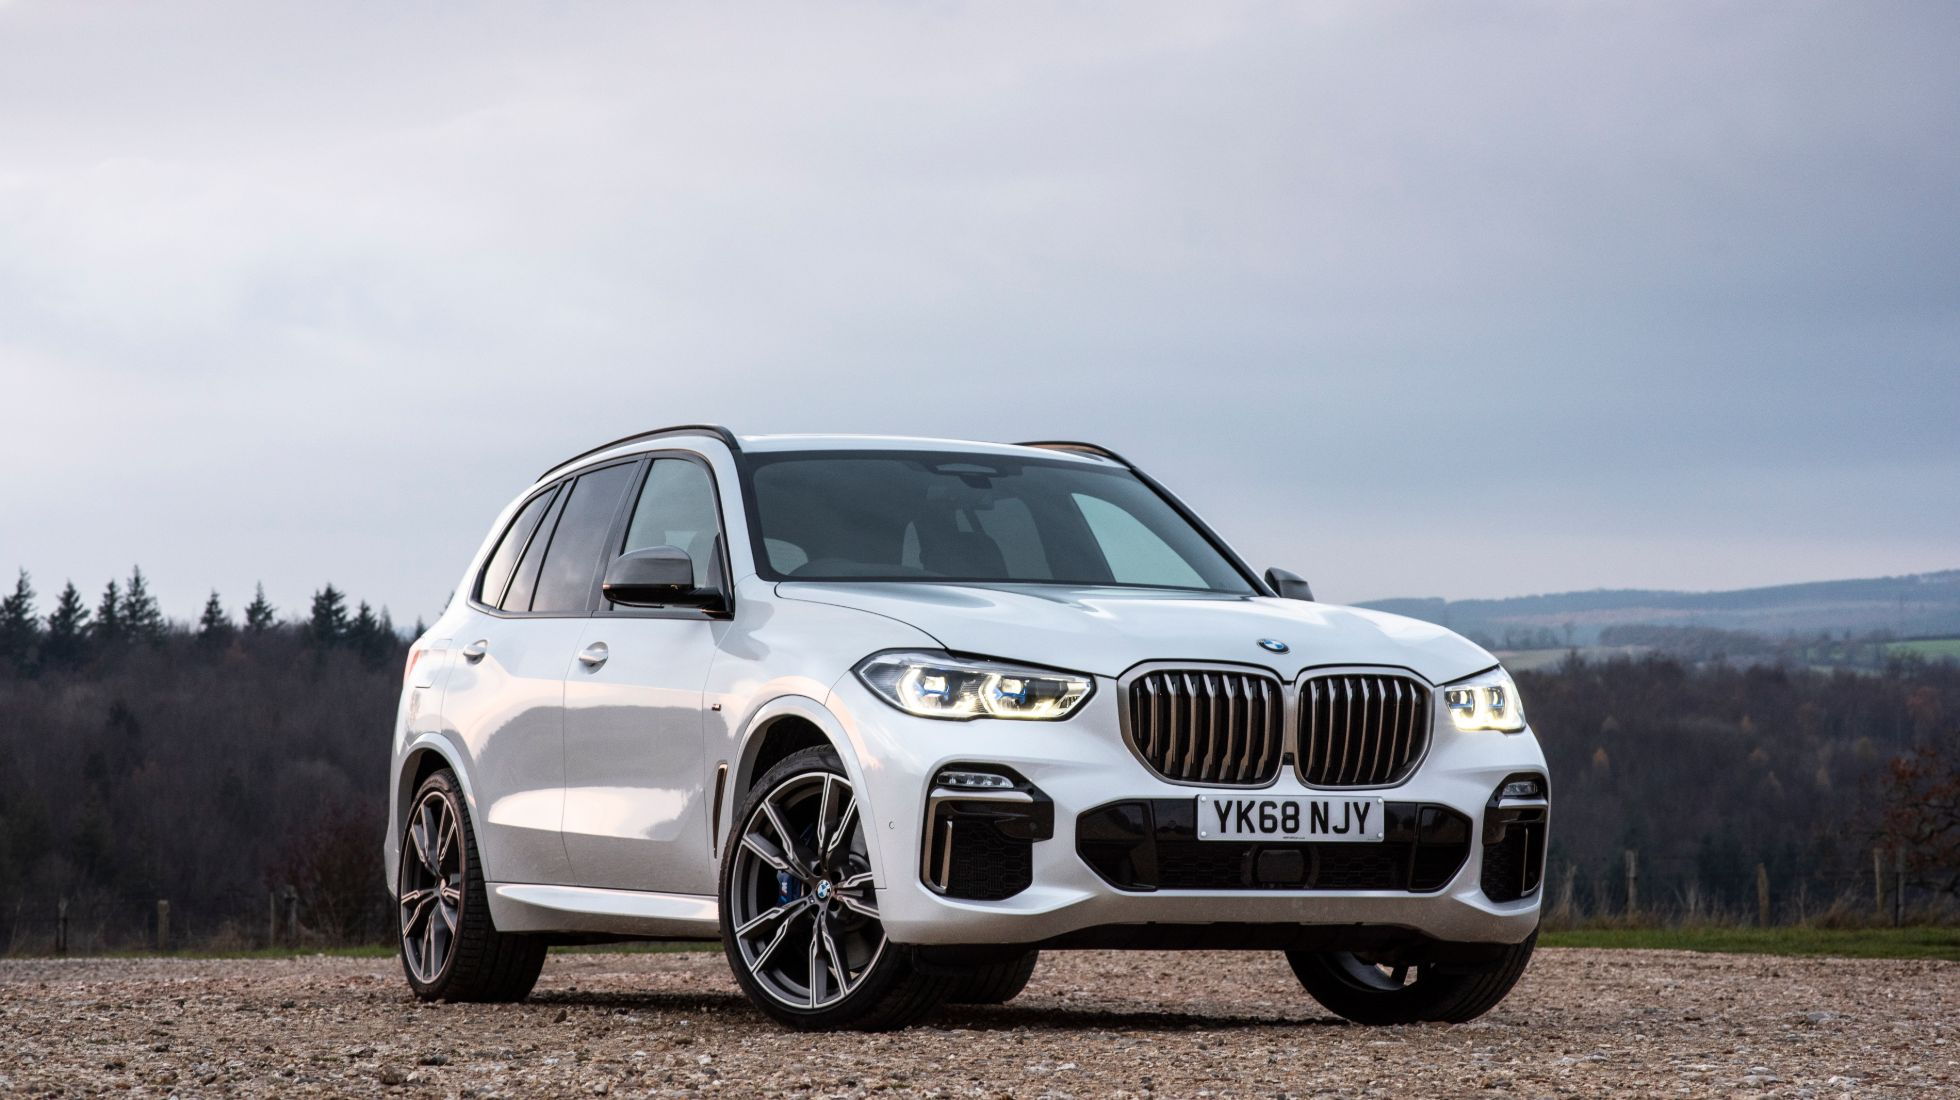 The deputy X5 M-car is perhaps the one to have